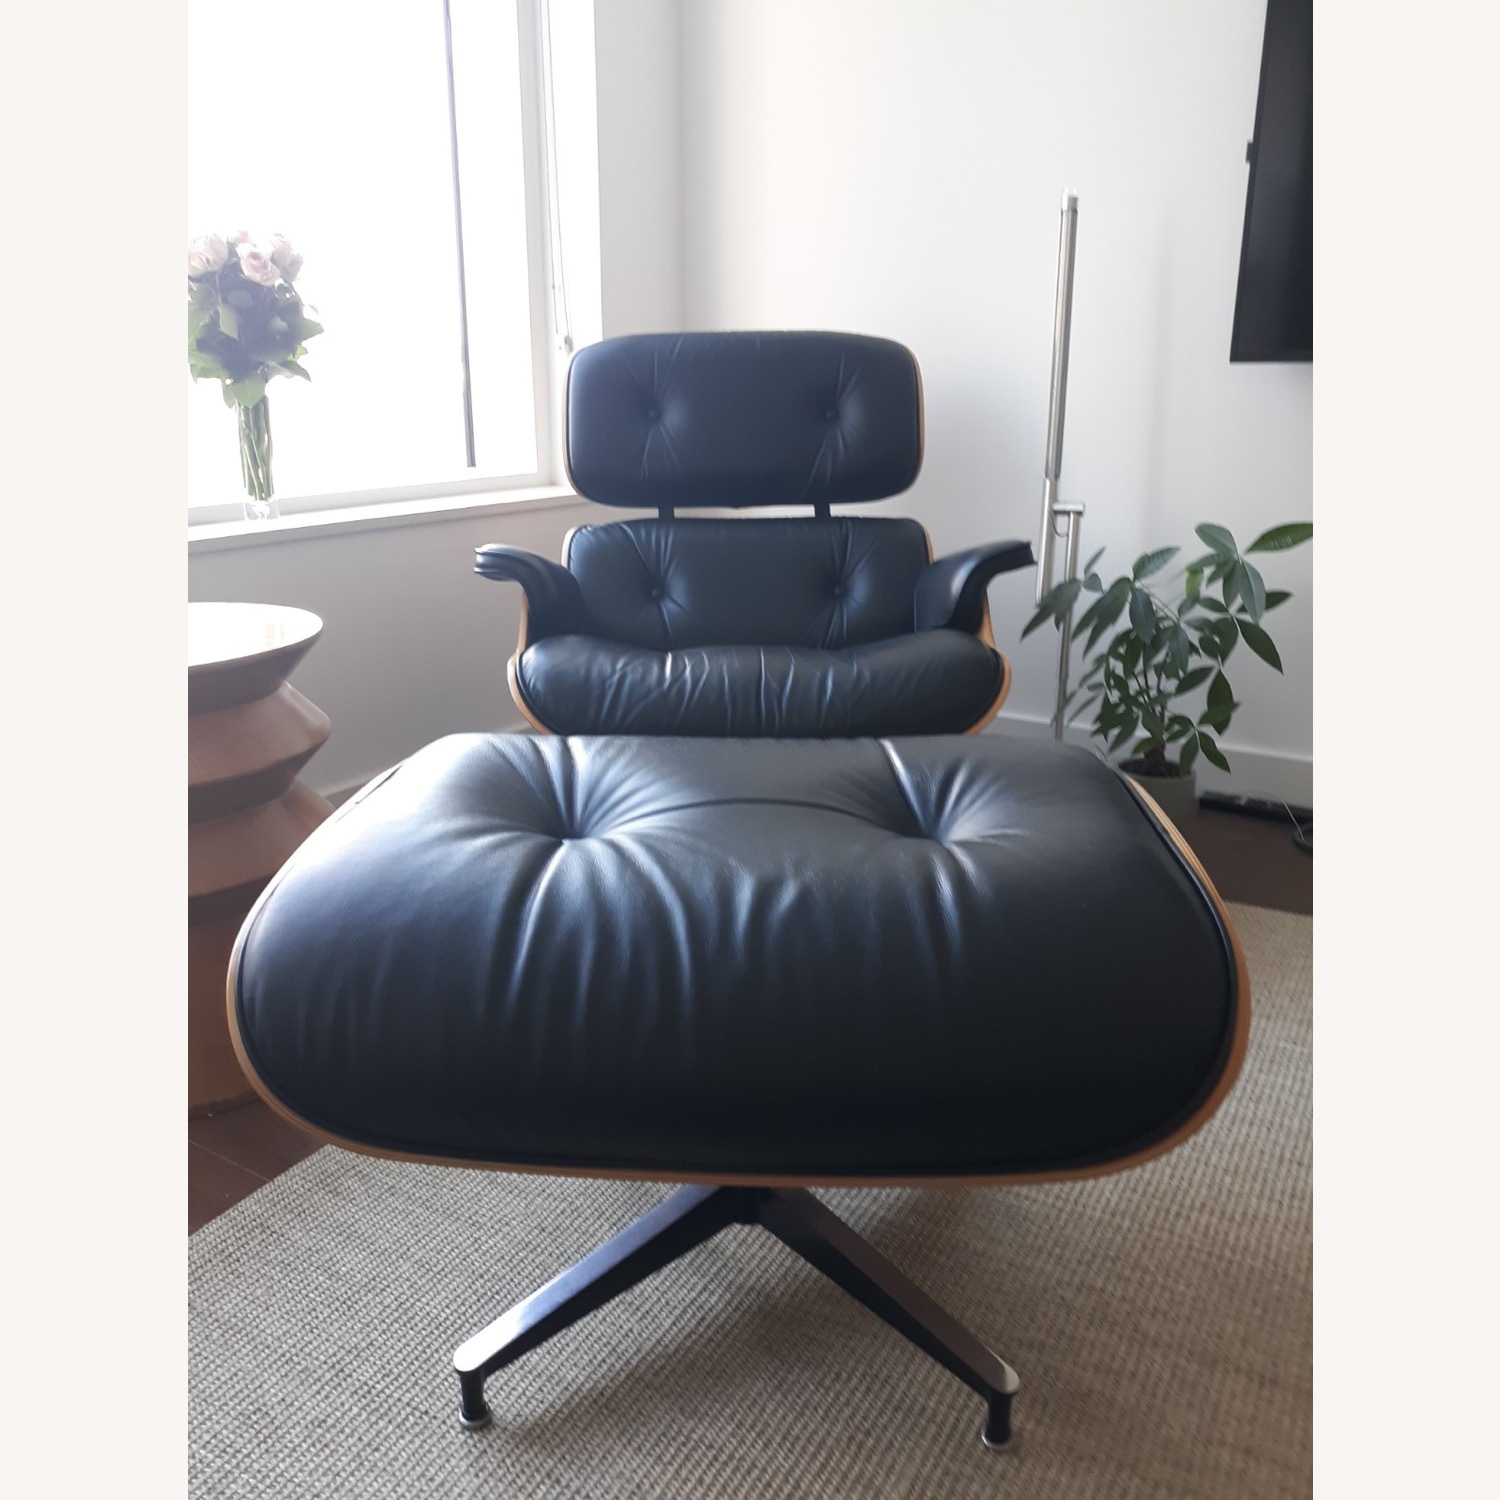 Herman Miller Eames Lounge Chair and Ottoman - image-33